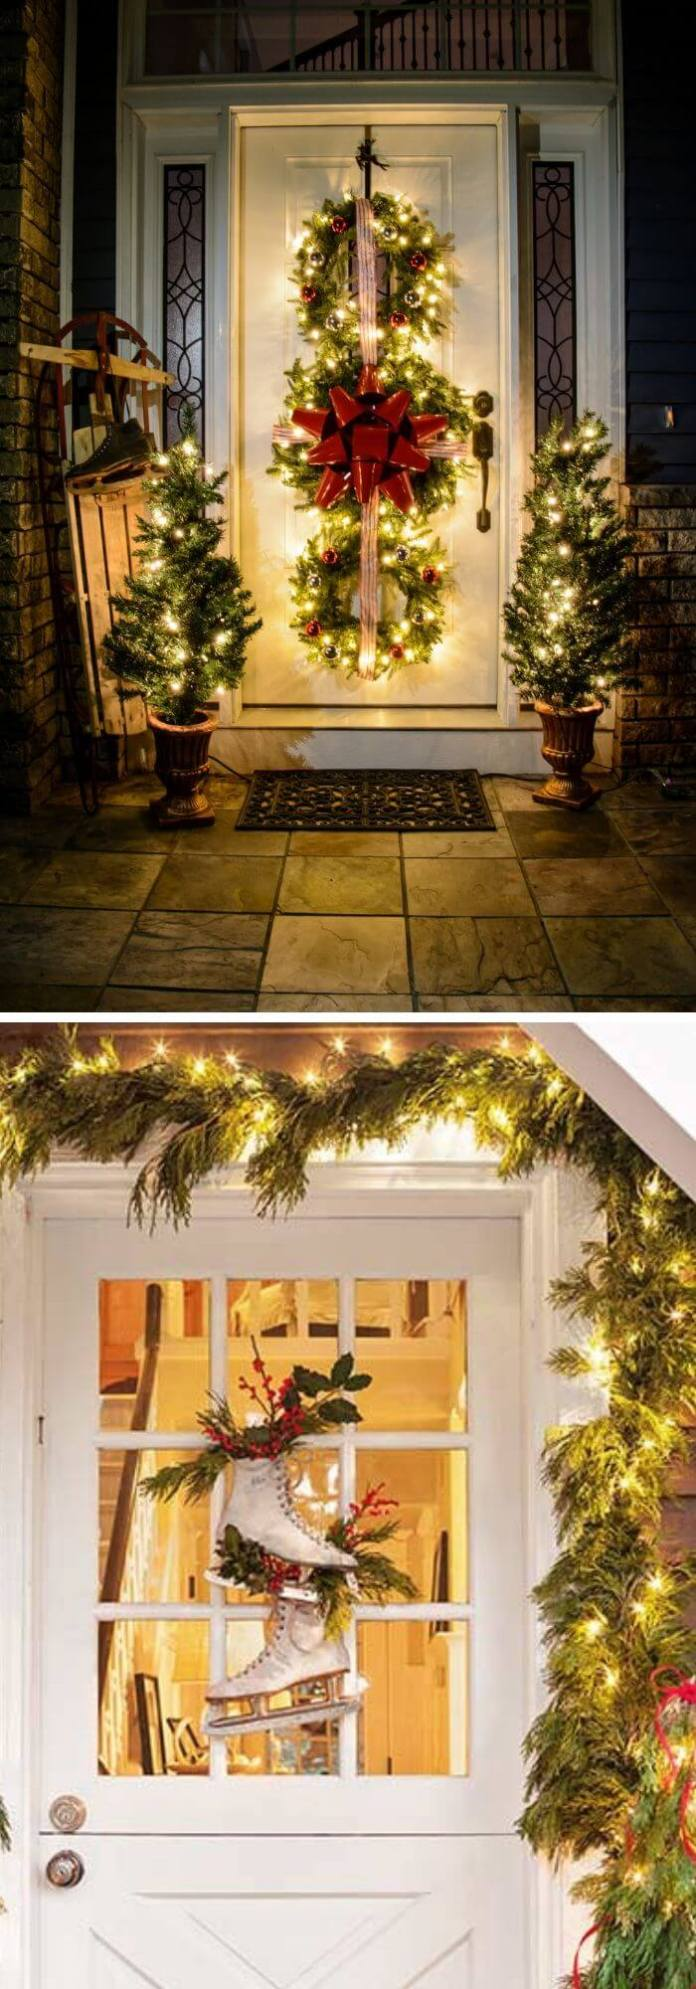 38 Beautiful Diy Outdoor Christmas Decorations Ideas Tutorials For 2020,Home Decor Newspaper Art And Craft